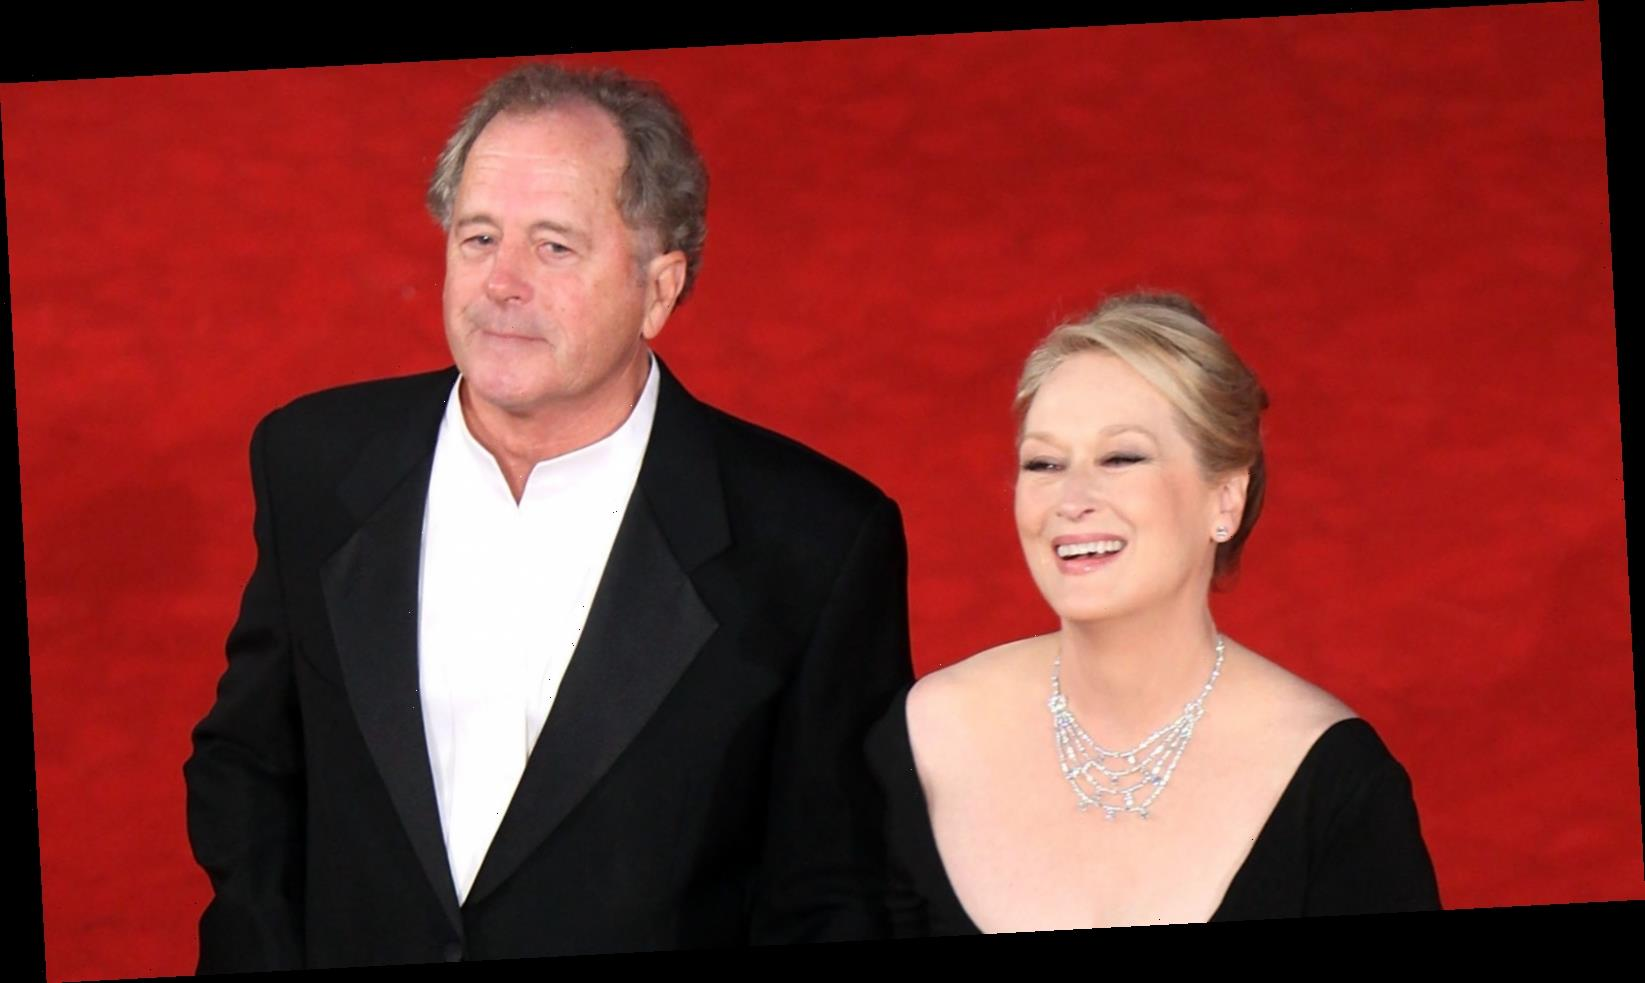 Details you didn't know about Meryl Streep's marriage